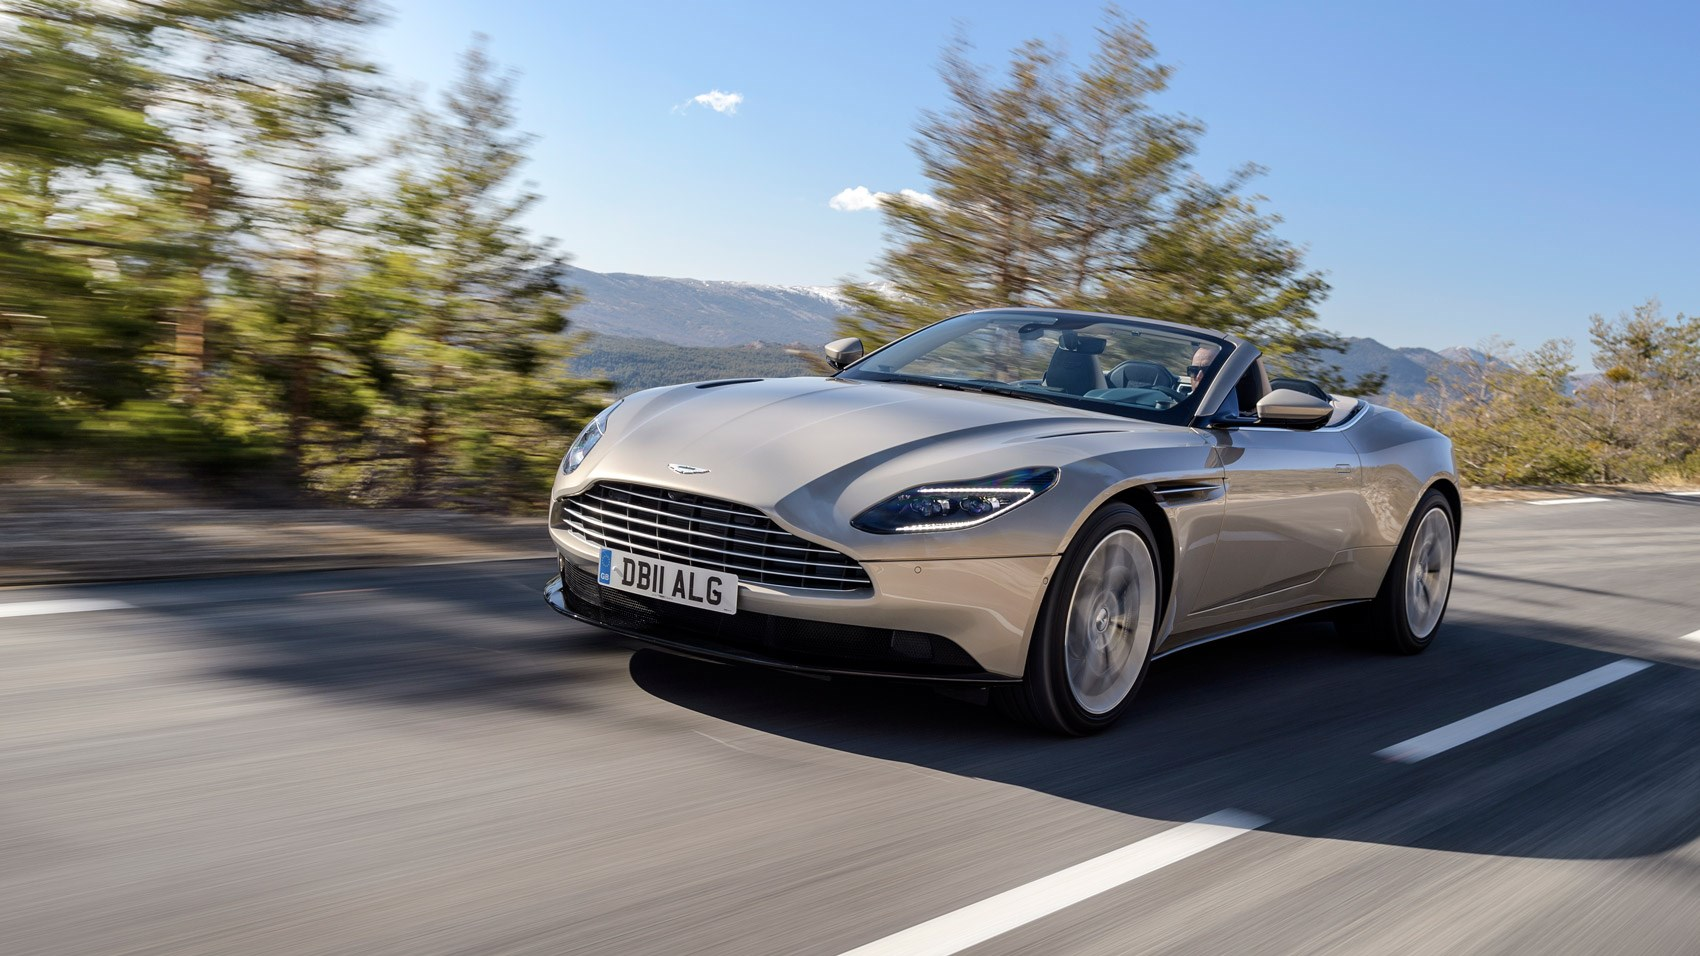 aston martin db11 volante review 2018 | car magazine